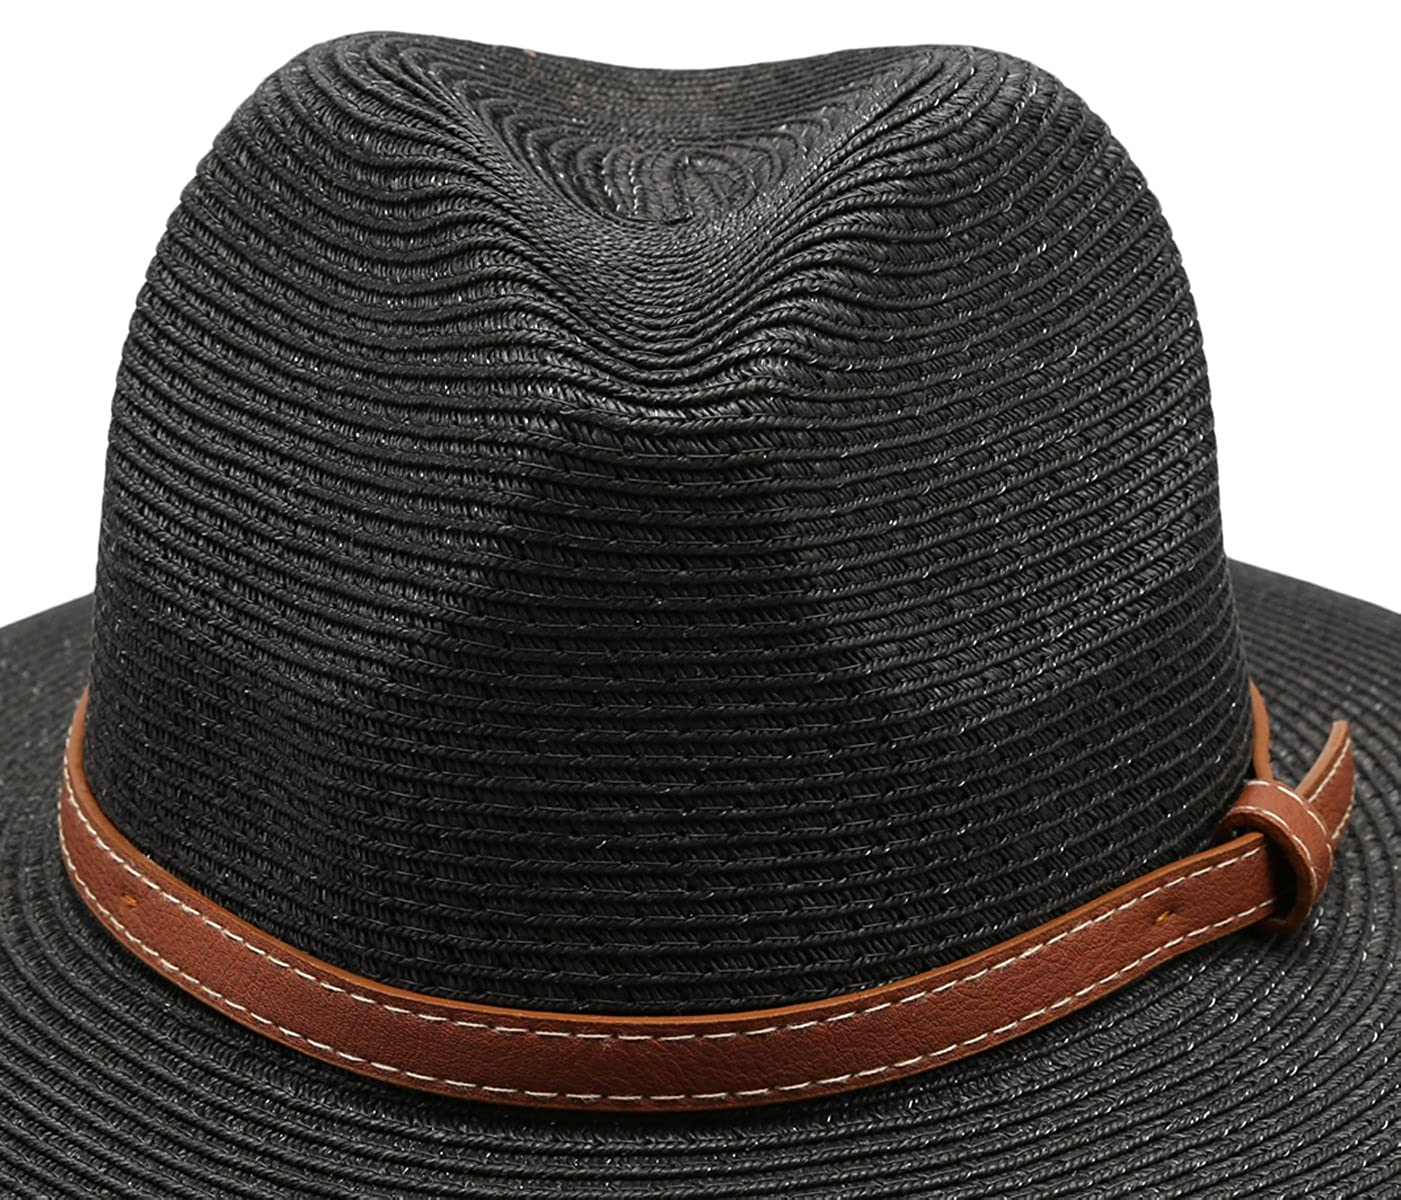 efce08e2f74e19 Epoch hats Women's Braid Straw Wide Brim Classic Fedora Sun Hat UPF 50+  with Adjustable Drawstring (F2250, Black) at Amazon Women's Clothing store: